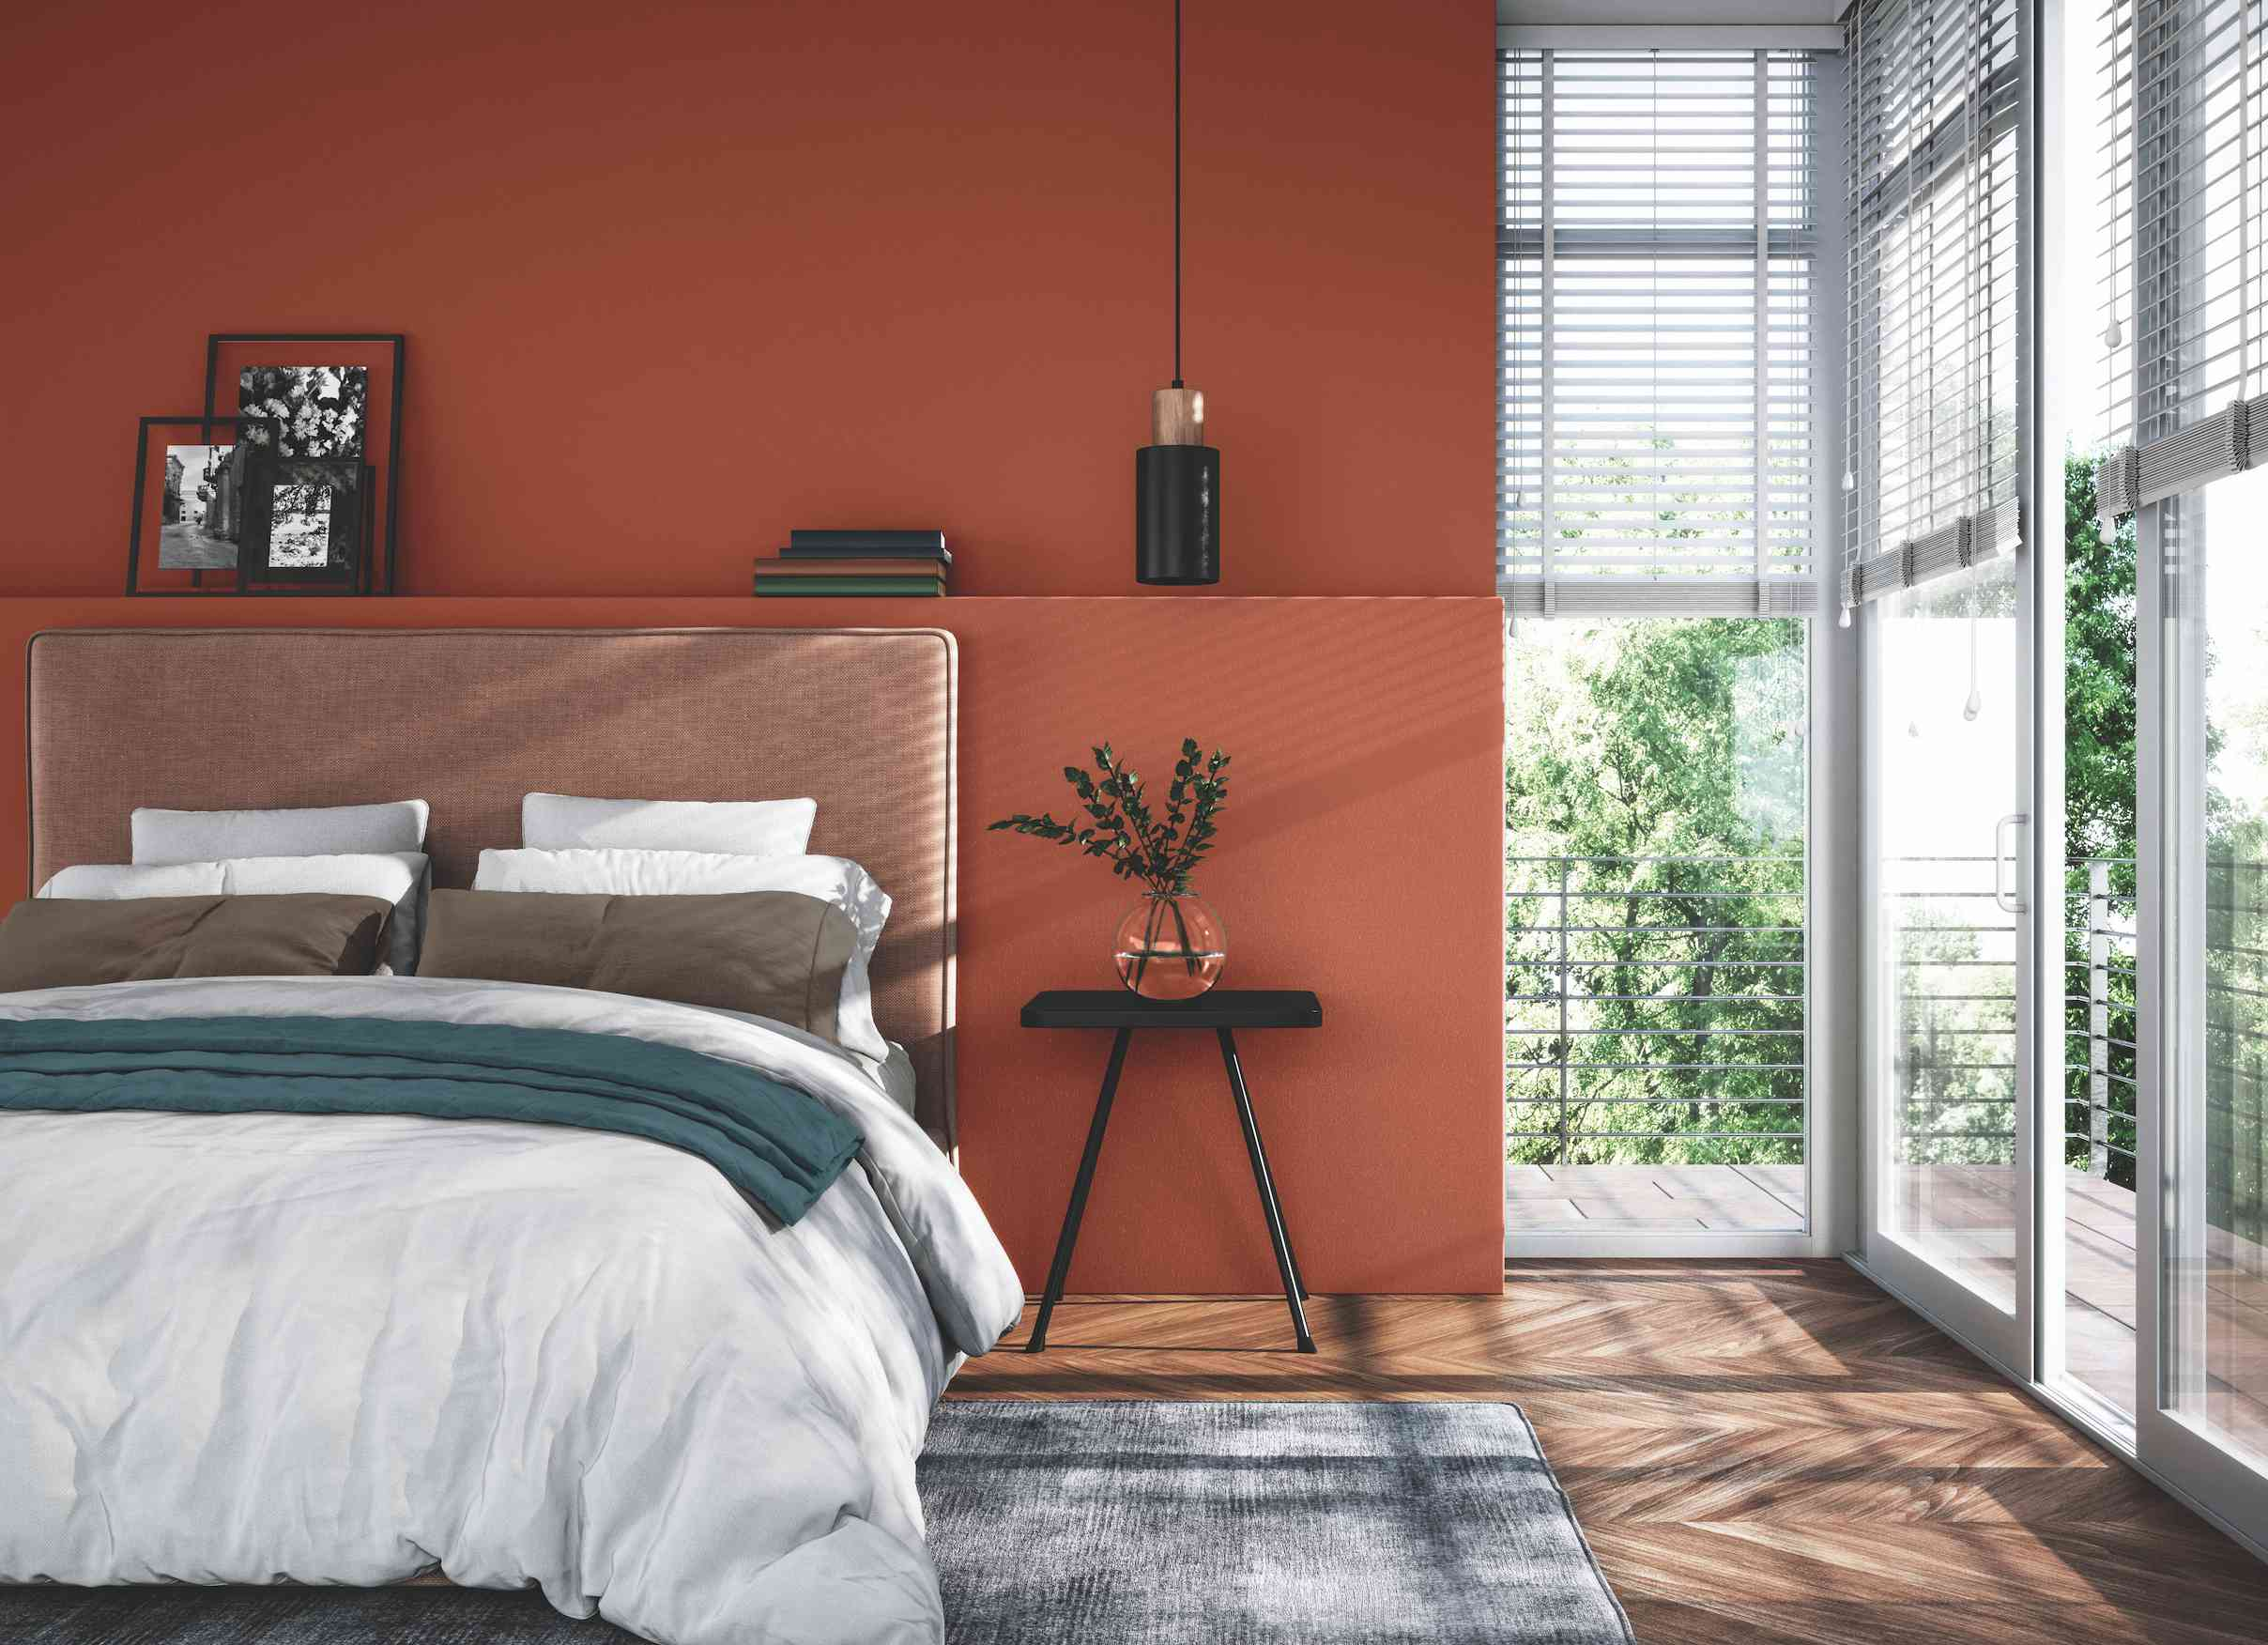 Bedroom painted in Ancient Copper by PPG